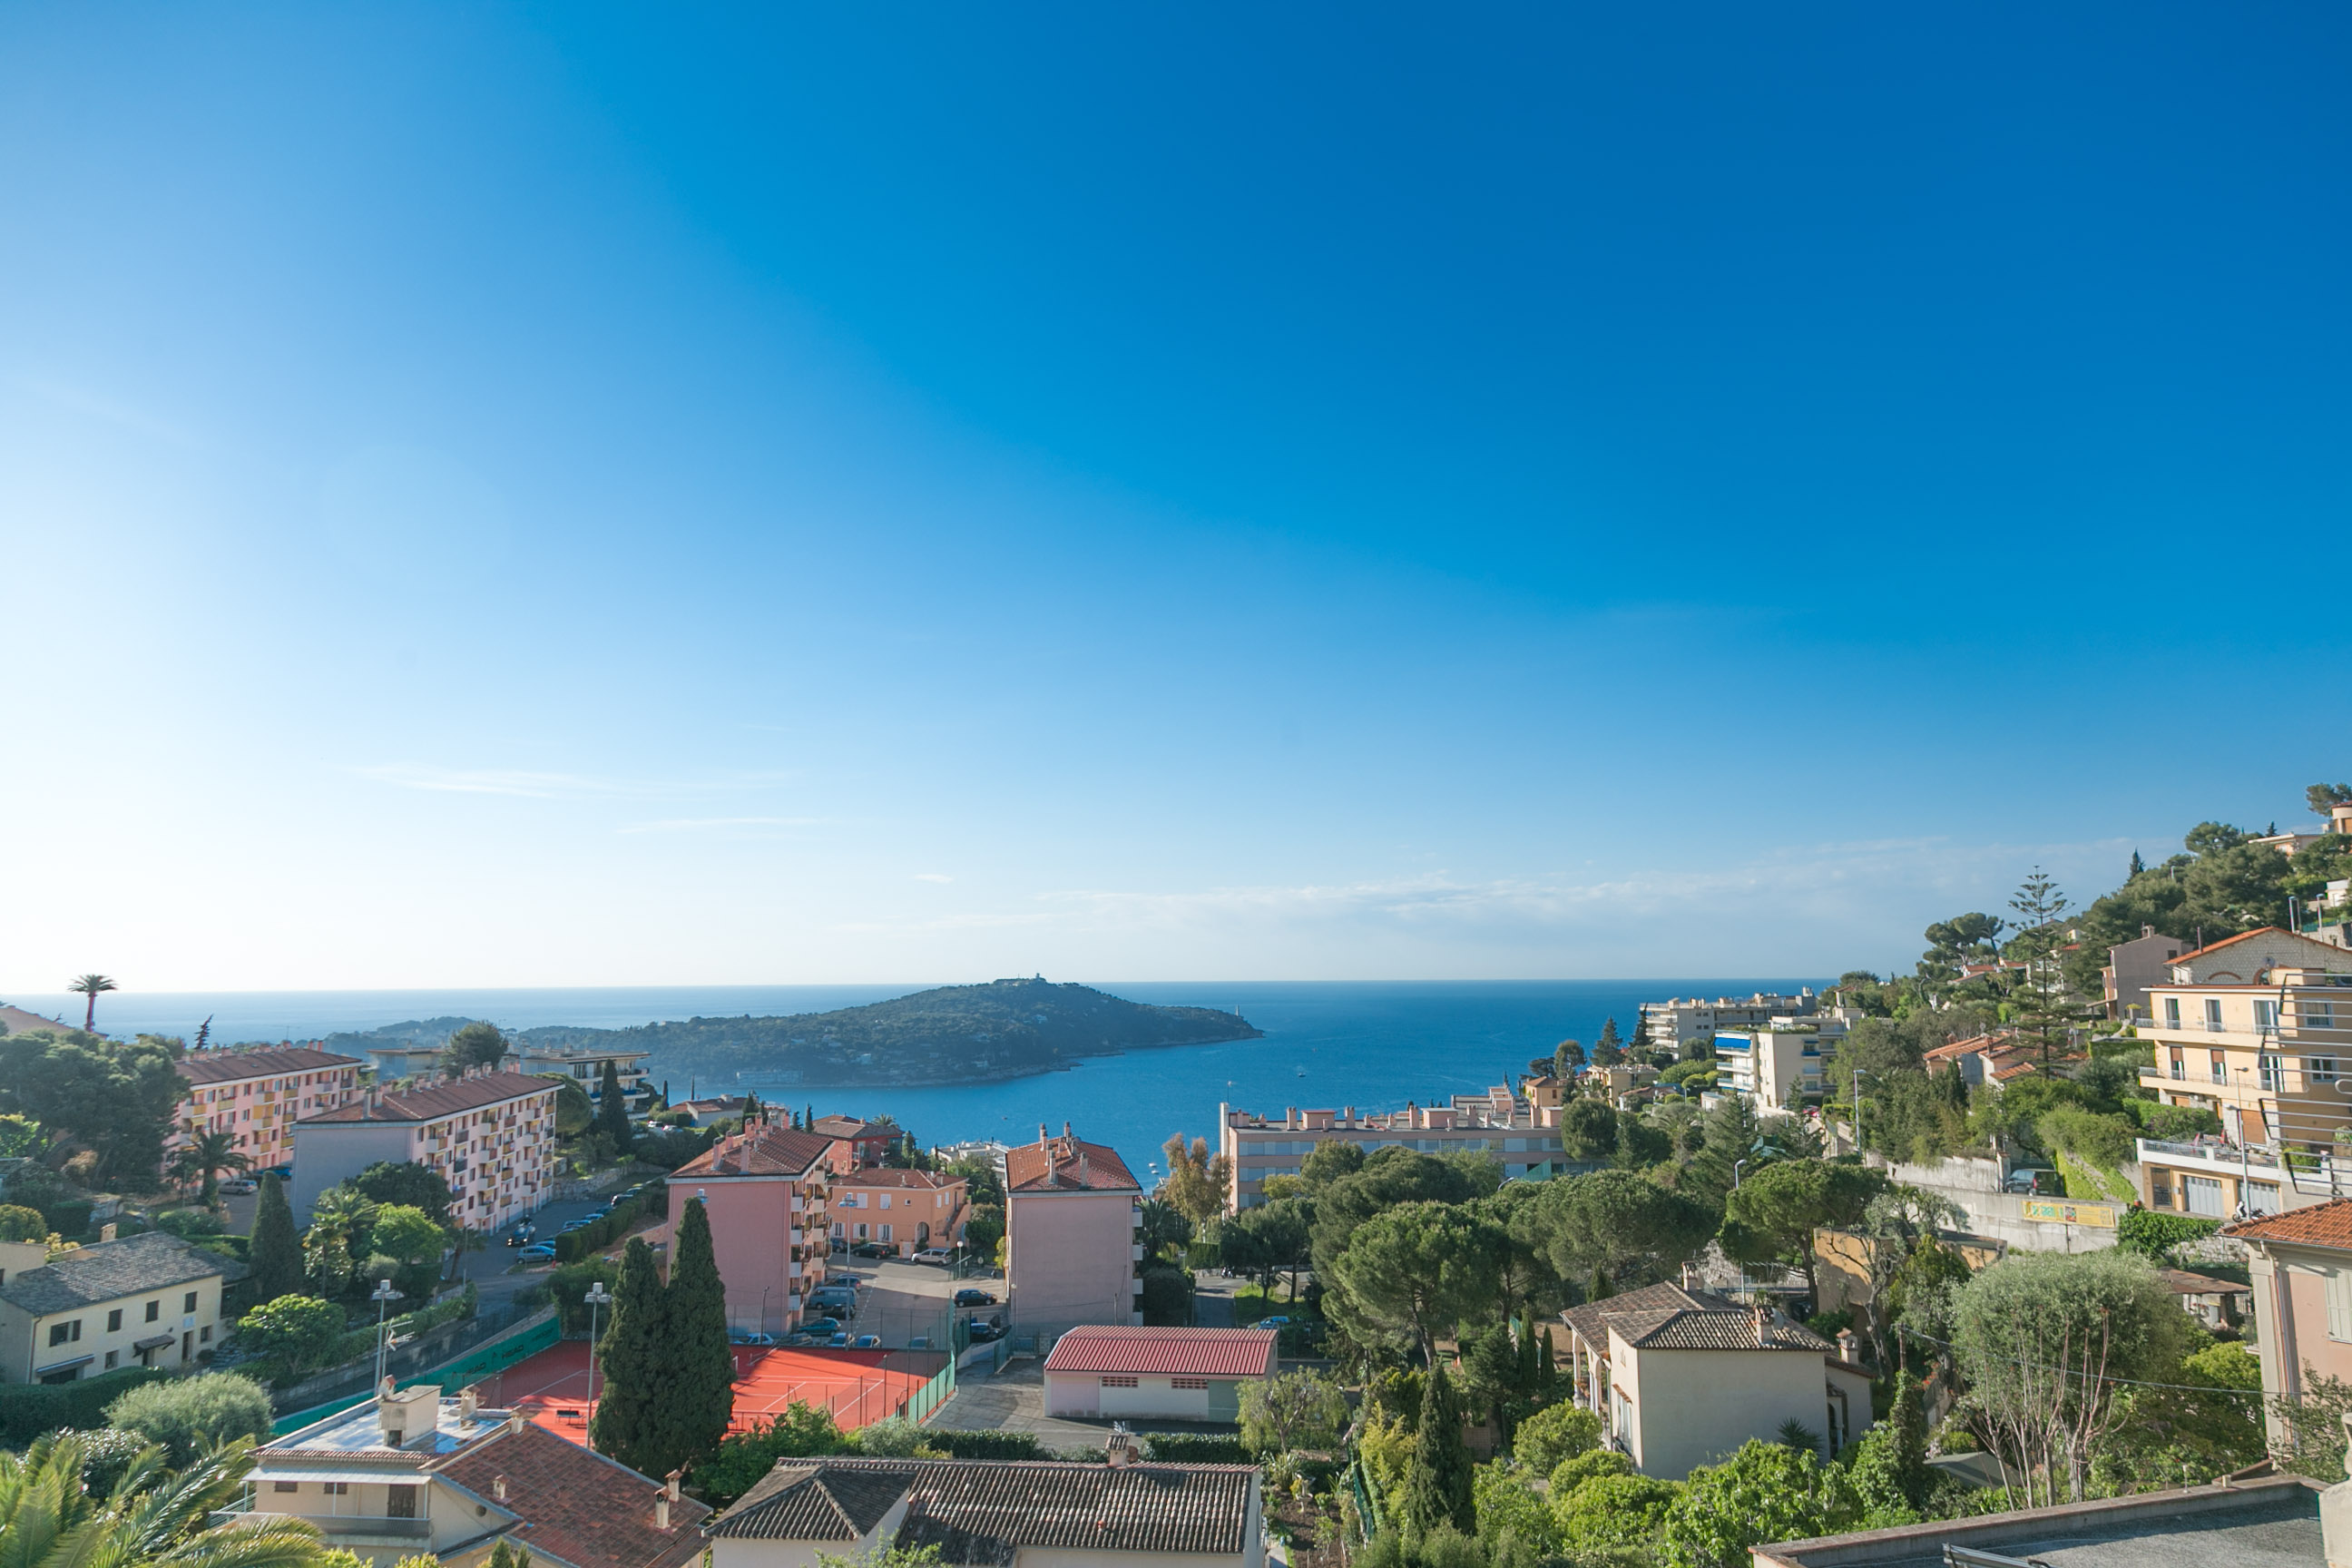 Hotel villefranche sur mer with swimming pool la fianc e - Office du tourisme villefranche sur mer ...